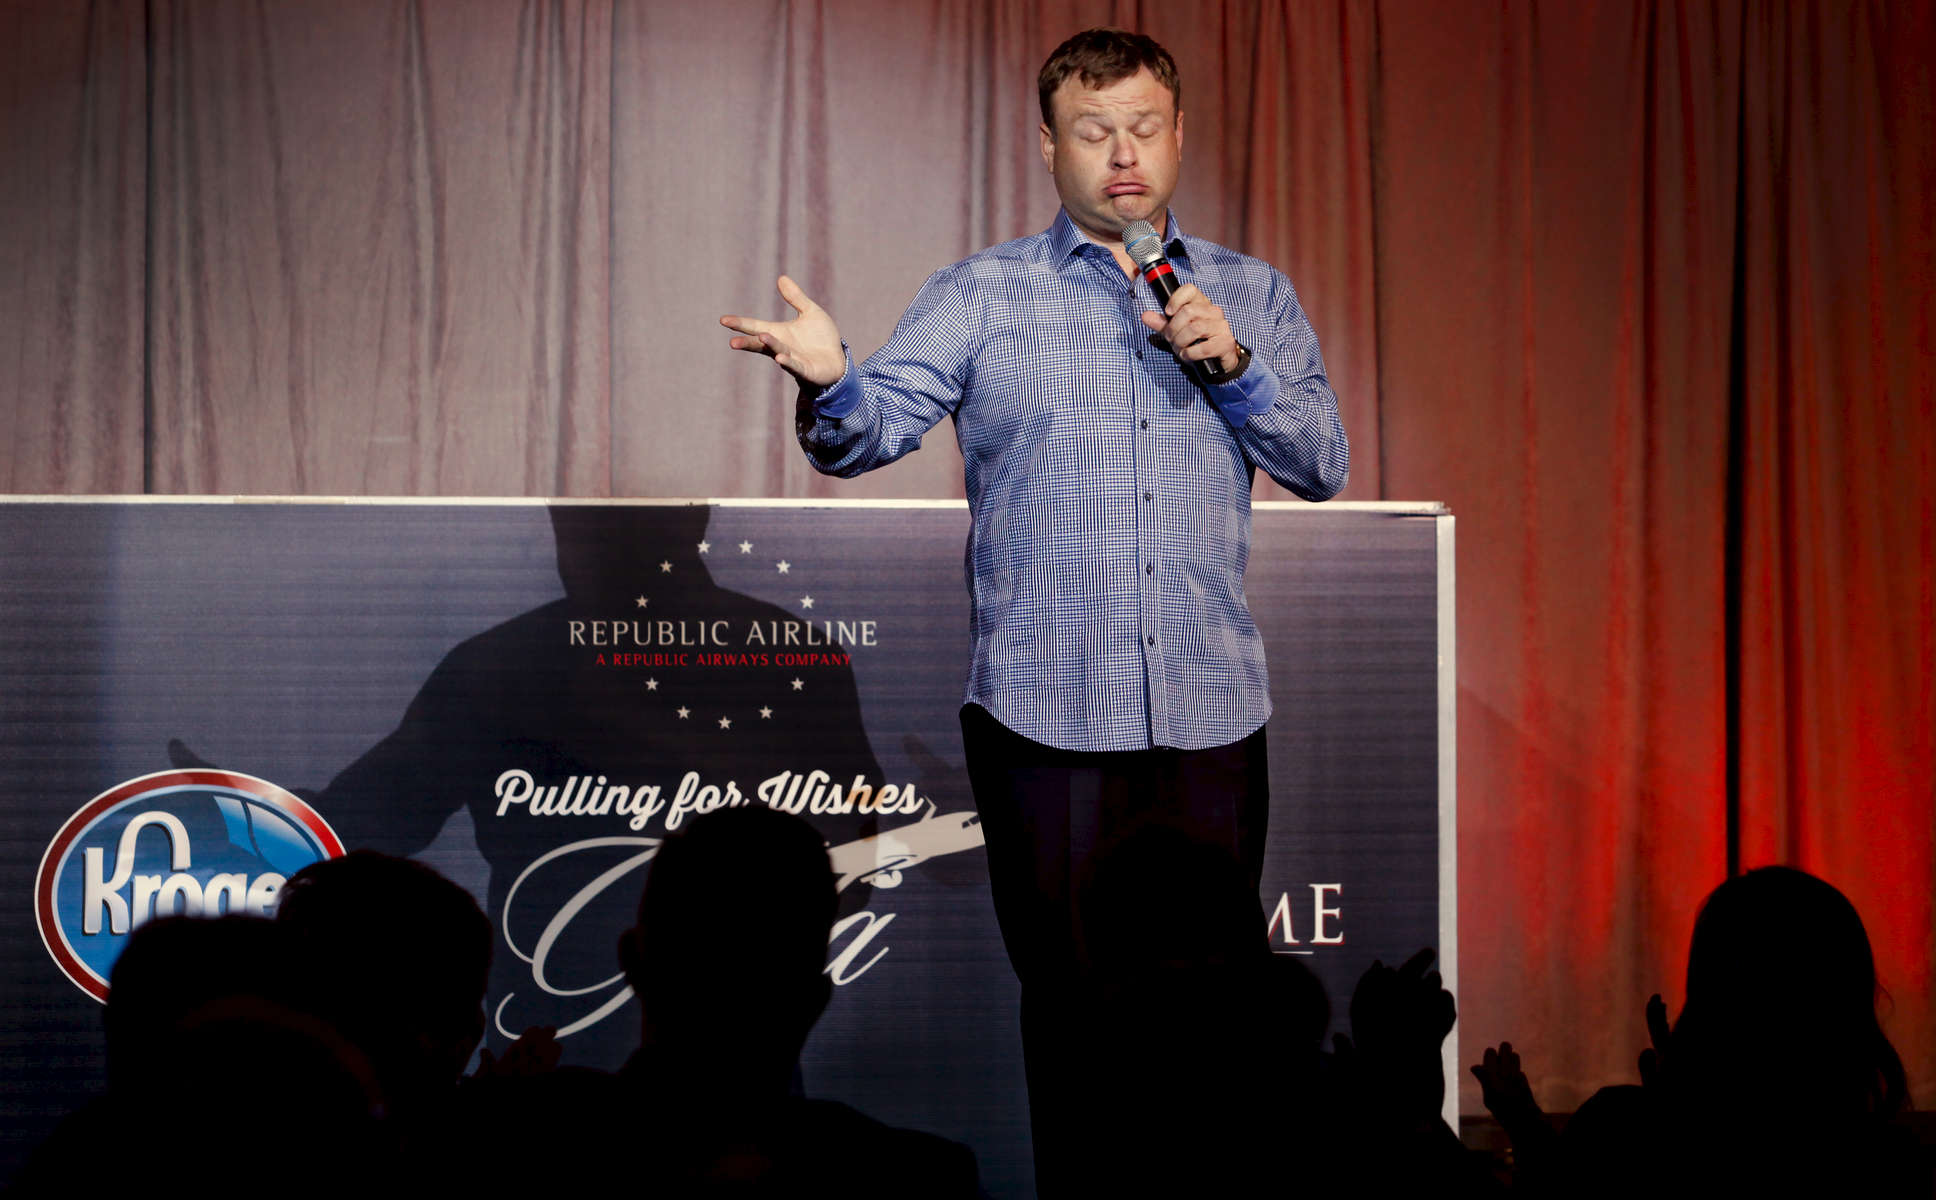 Comedian Frank Caliendo performs at Republic Airways Pulling for Wishes Gala.Event photography by Perry Reichanadter, Wayne Images